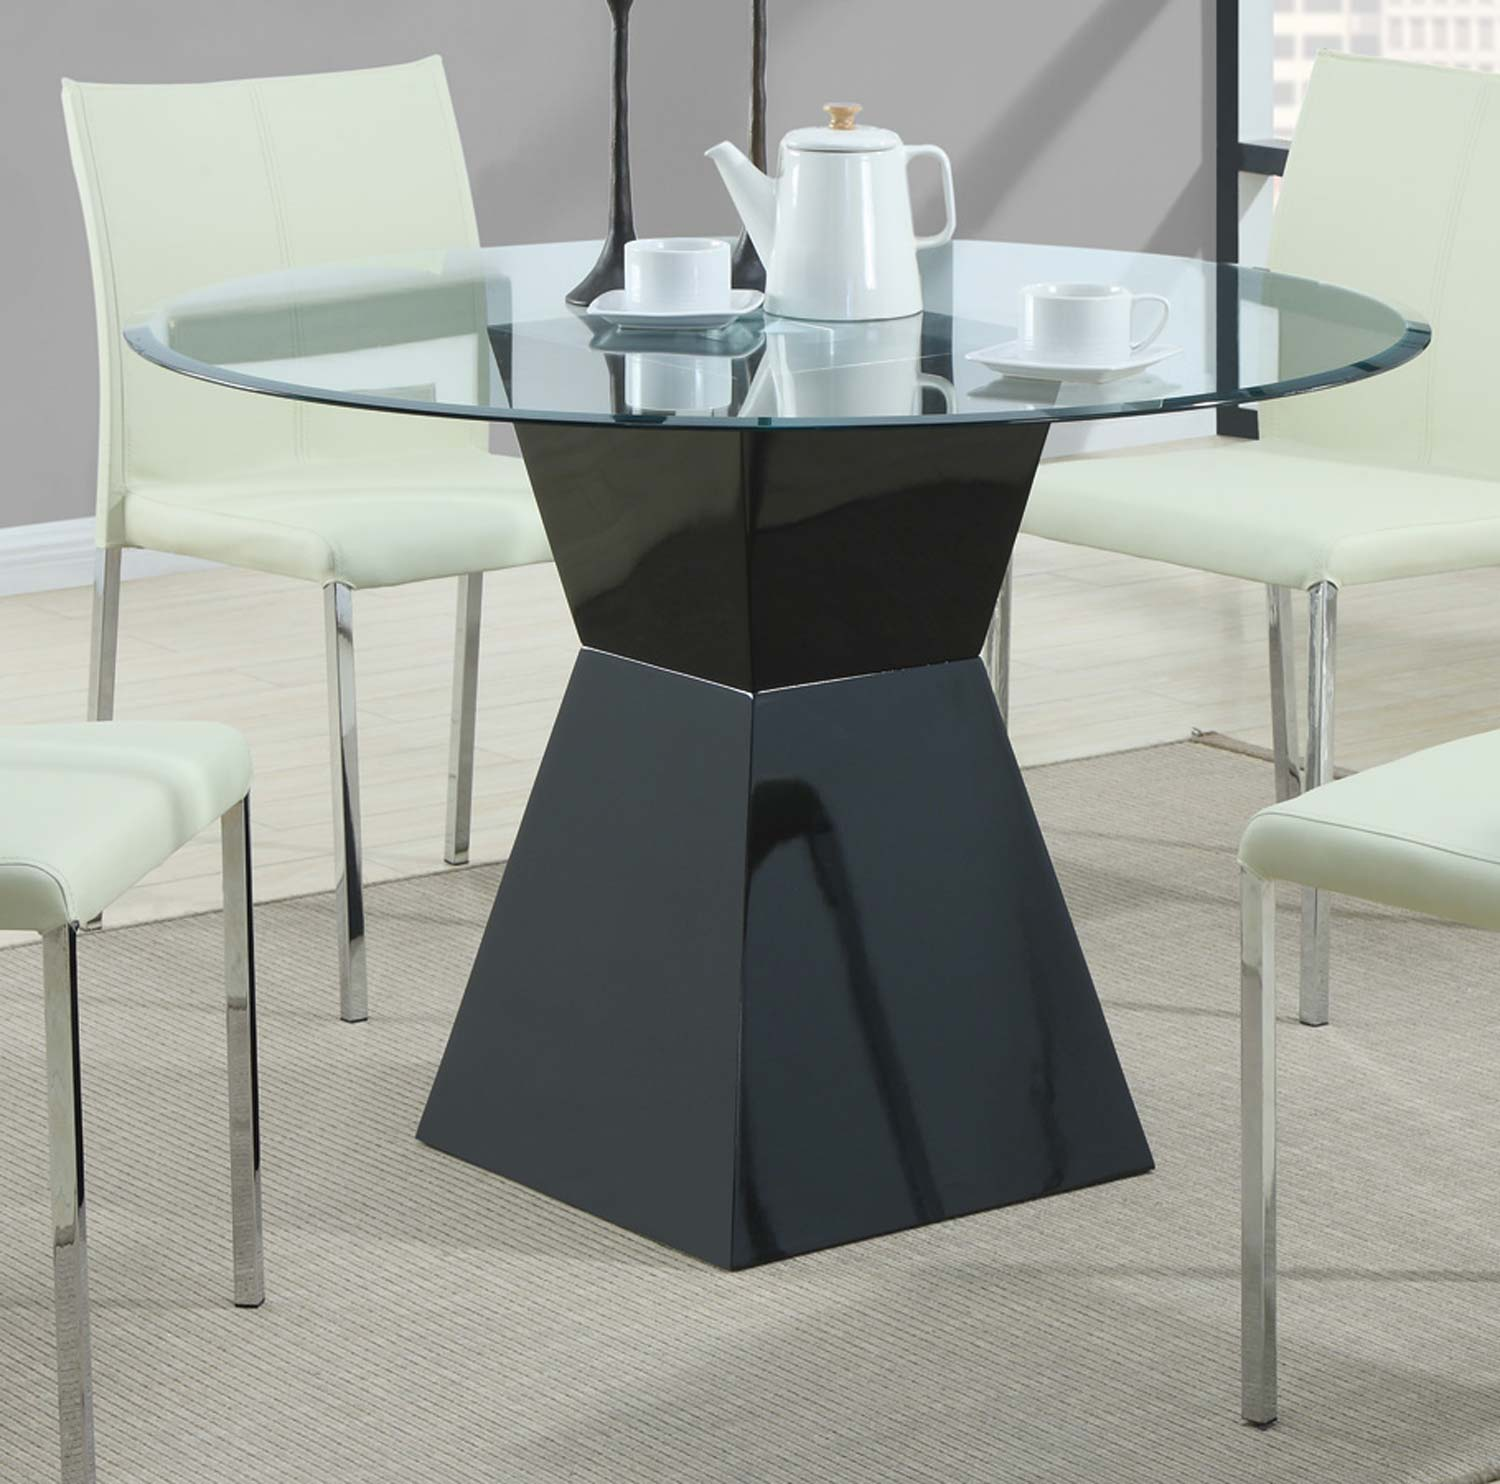 Coaster 103731 Round Glass Dining Table